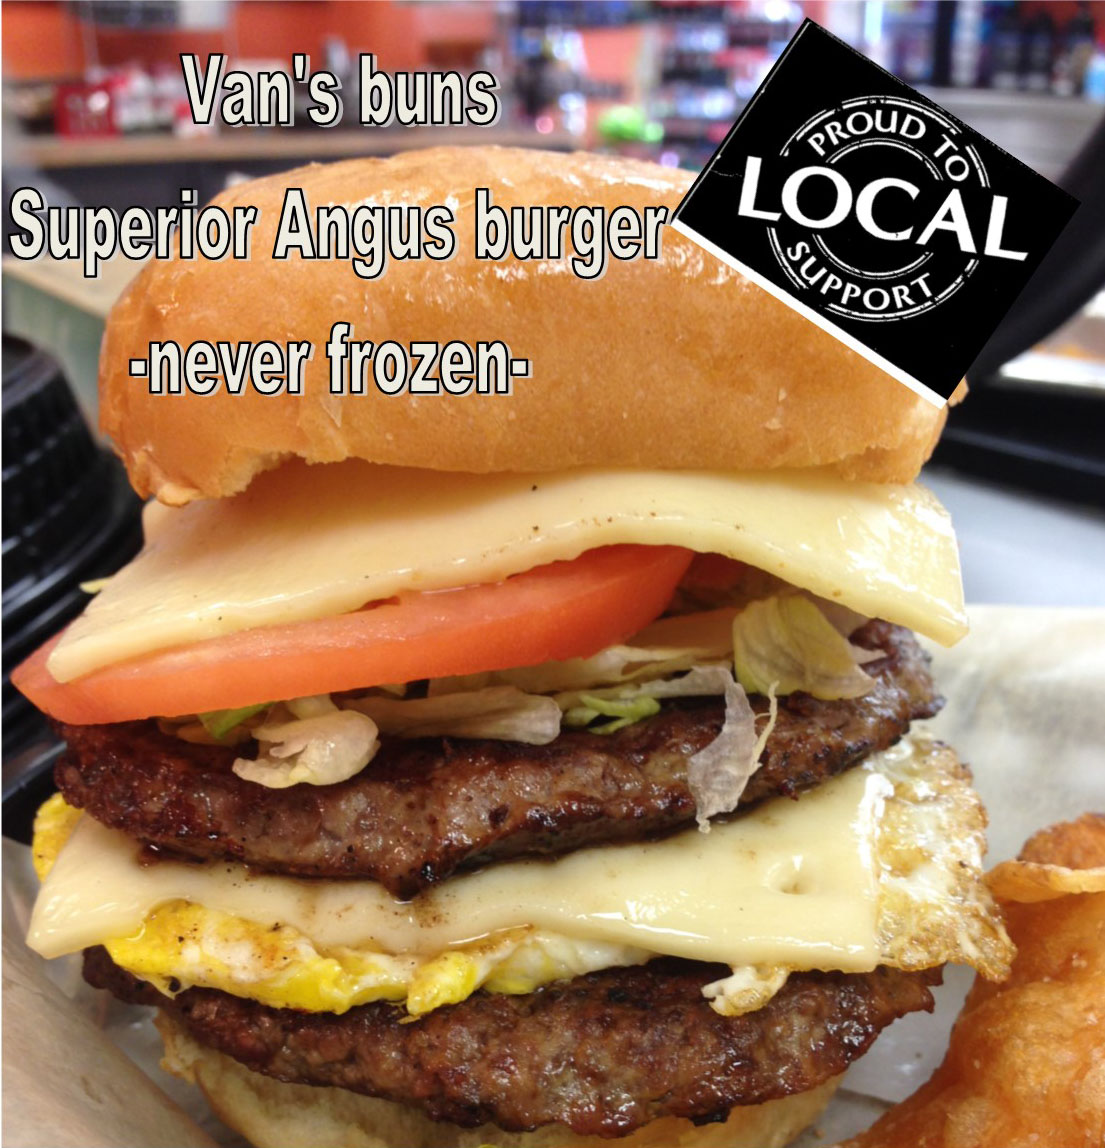 """Van's buns Superior Angus burger - never frozen - proud to support local"" burger"